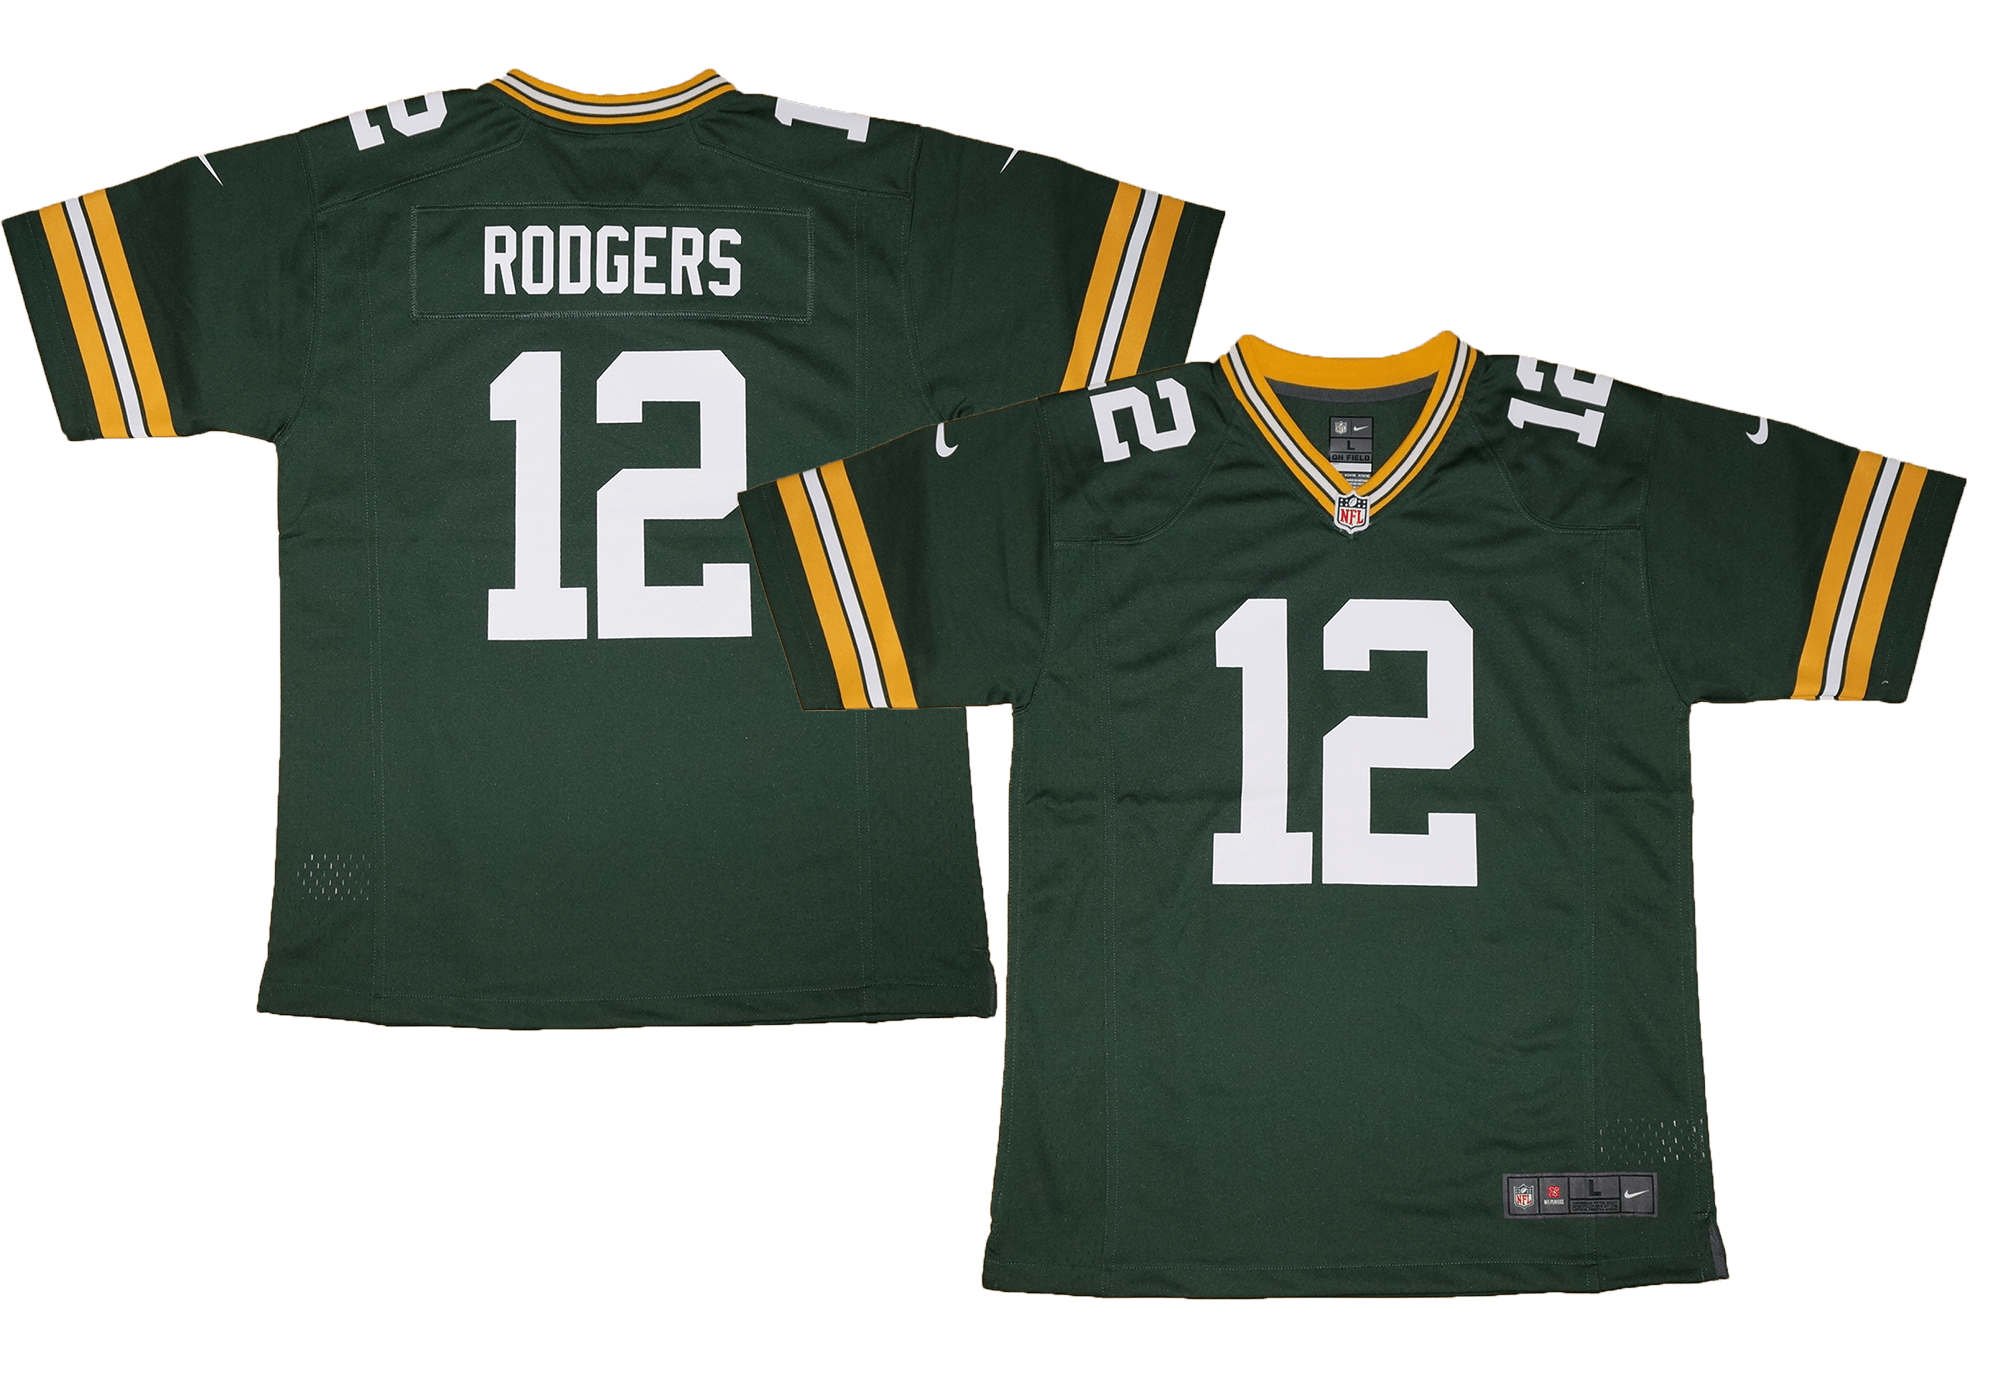 bd144d03c Youth Nike NFL Green Bay Packers #12 Aaron Rodgers Team Color Game ...